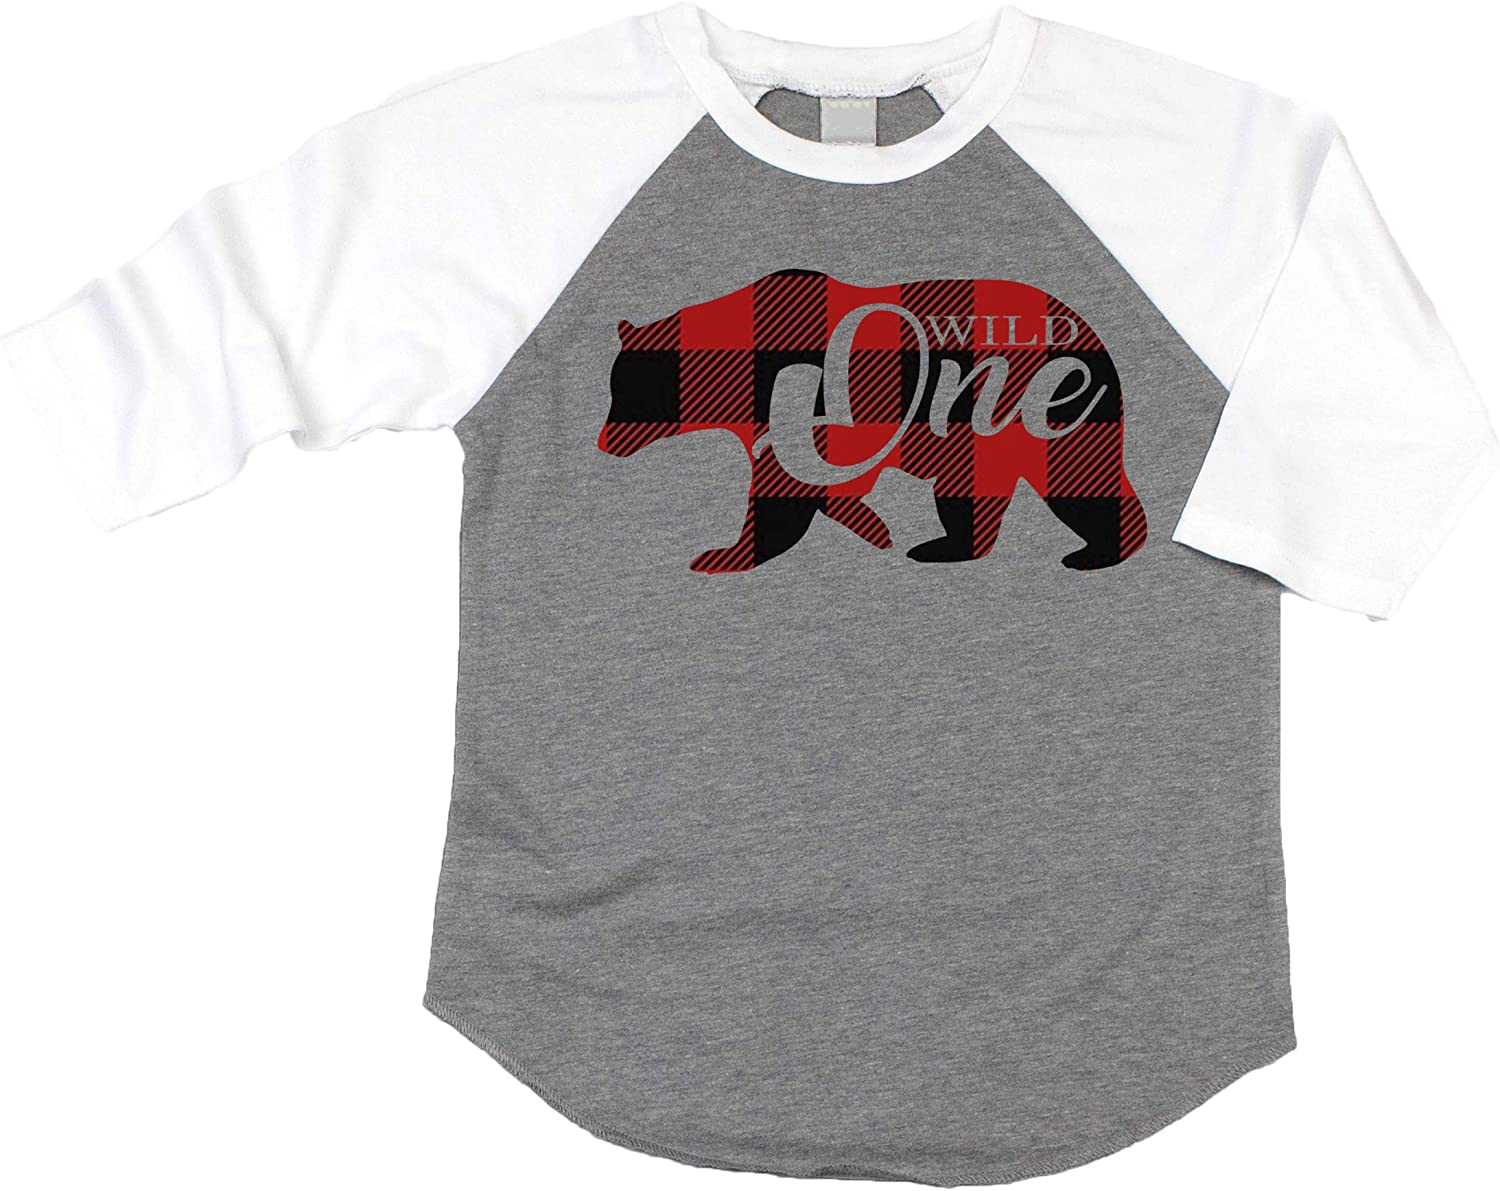 Plaid Bear Wild One 1st Birthday Shirt for Boys First Birthday Outfit